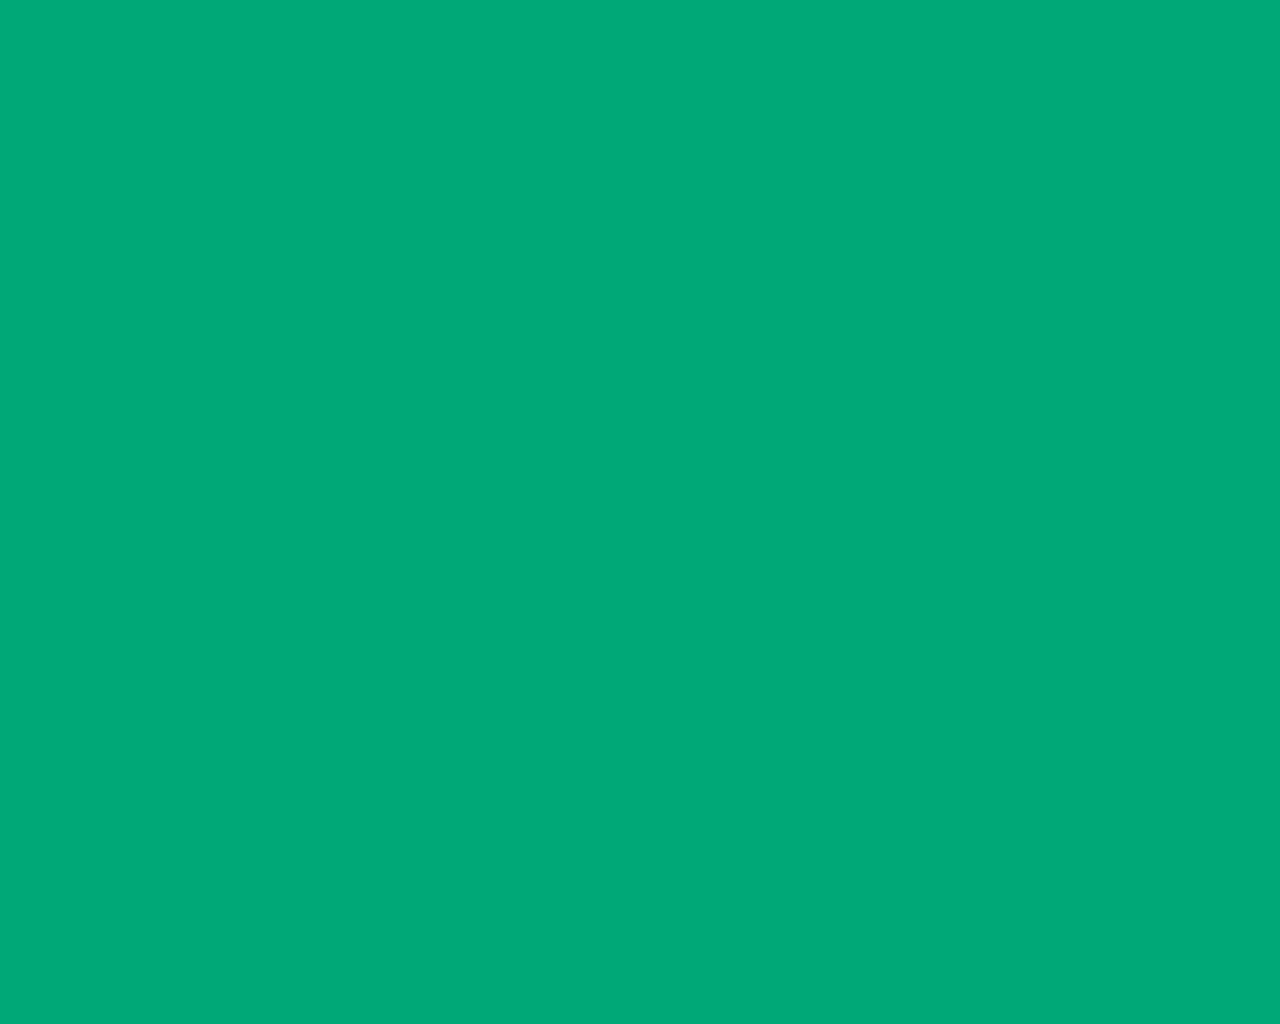 1280x1024 Green Munsell Solid Color Background